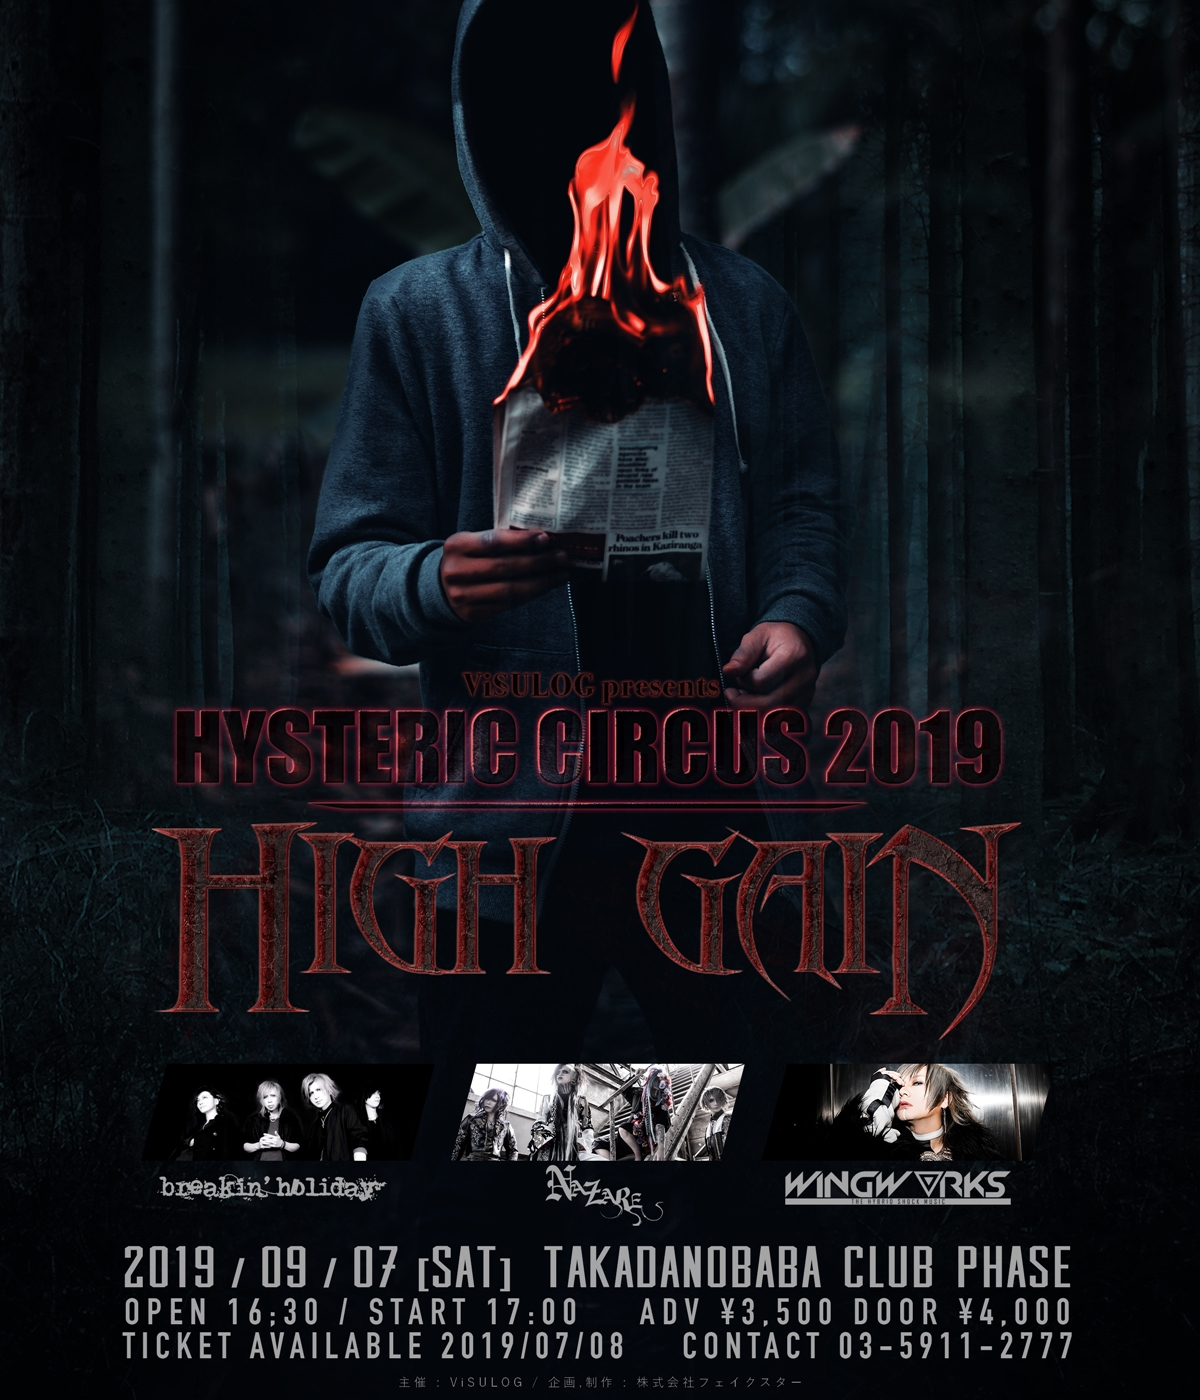 NAZARE、breakin7holiday、WING WORKSスリーマン決定!9月7日(土)「HYSTERIC CIRCUS 2019-HIGH GAIN-」開催!! | ヴィジュアル系ポータルサイト「ViSULOG」